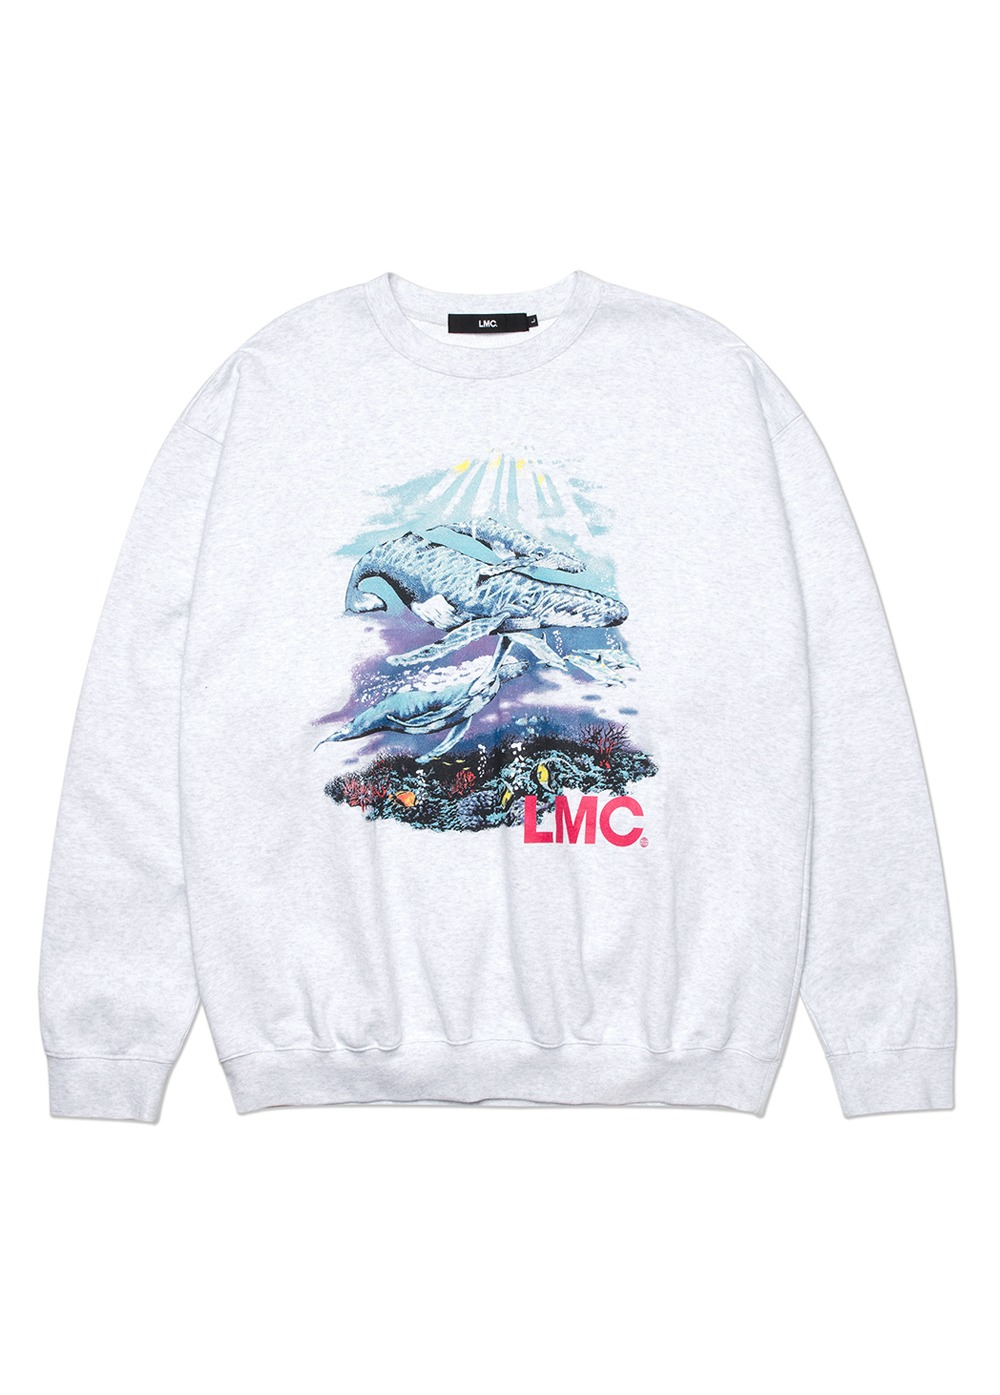 LMC SEAWORLD OVERSIZED SWEATSHIRT lt. heather gray